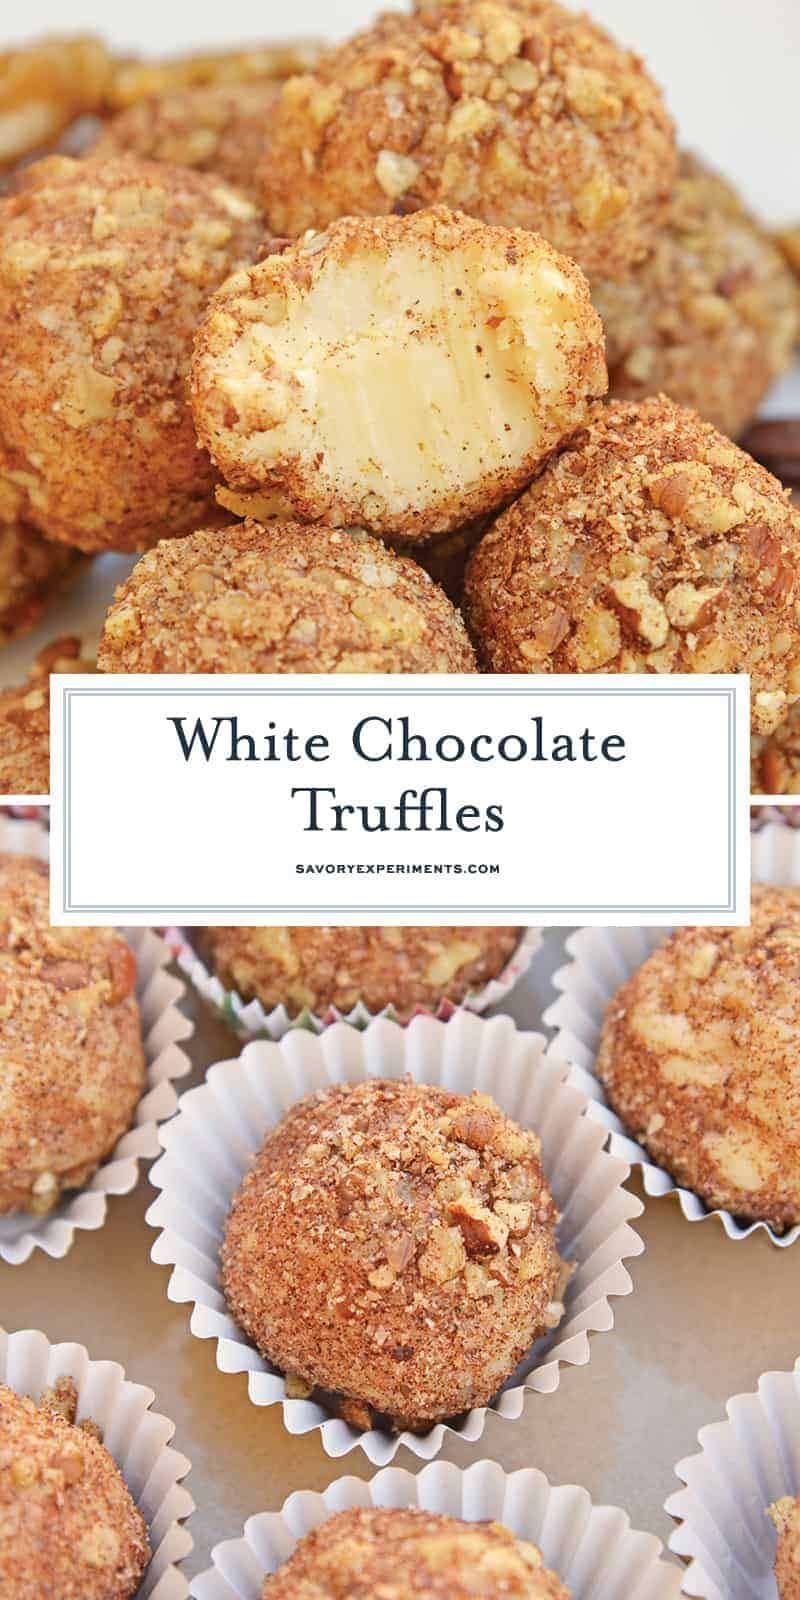 White Chocolate Truffles are an easy truffle recipe made with just a handful of ingredients. Creamy white chocolate rolled in toasted pecans, cinnamon and nutmeg. #whitechocolatetruffles #easytrufflerecipe www.savoryexperiments.com